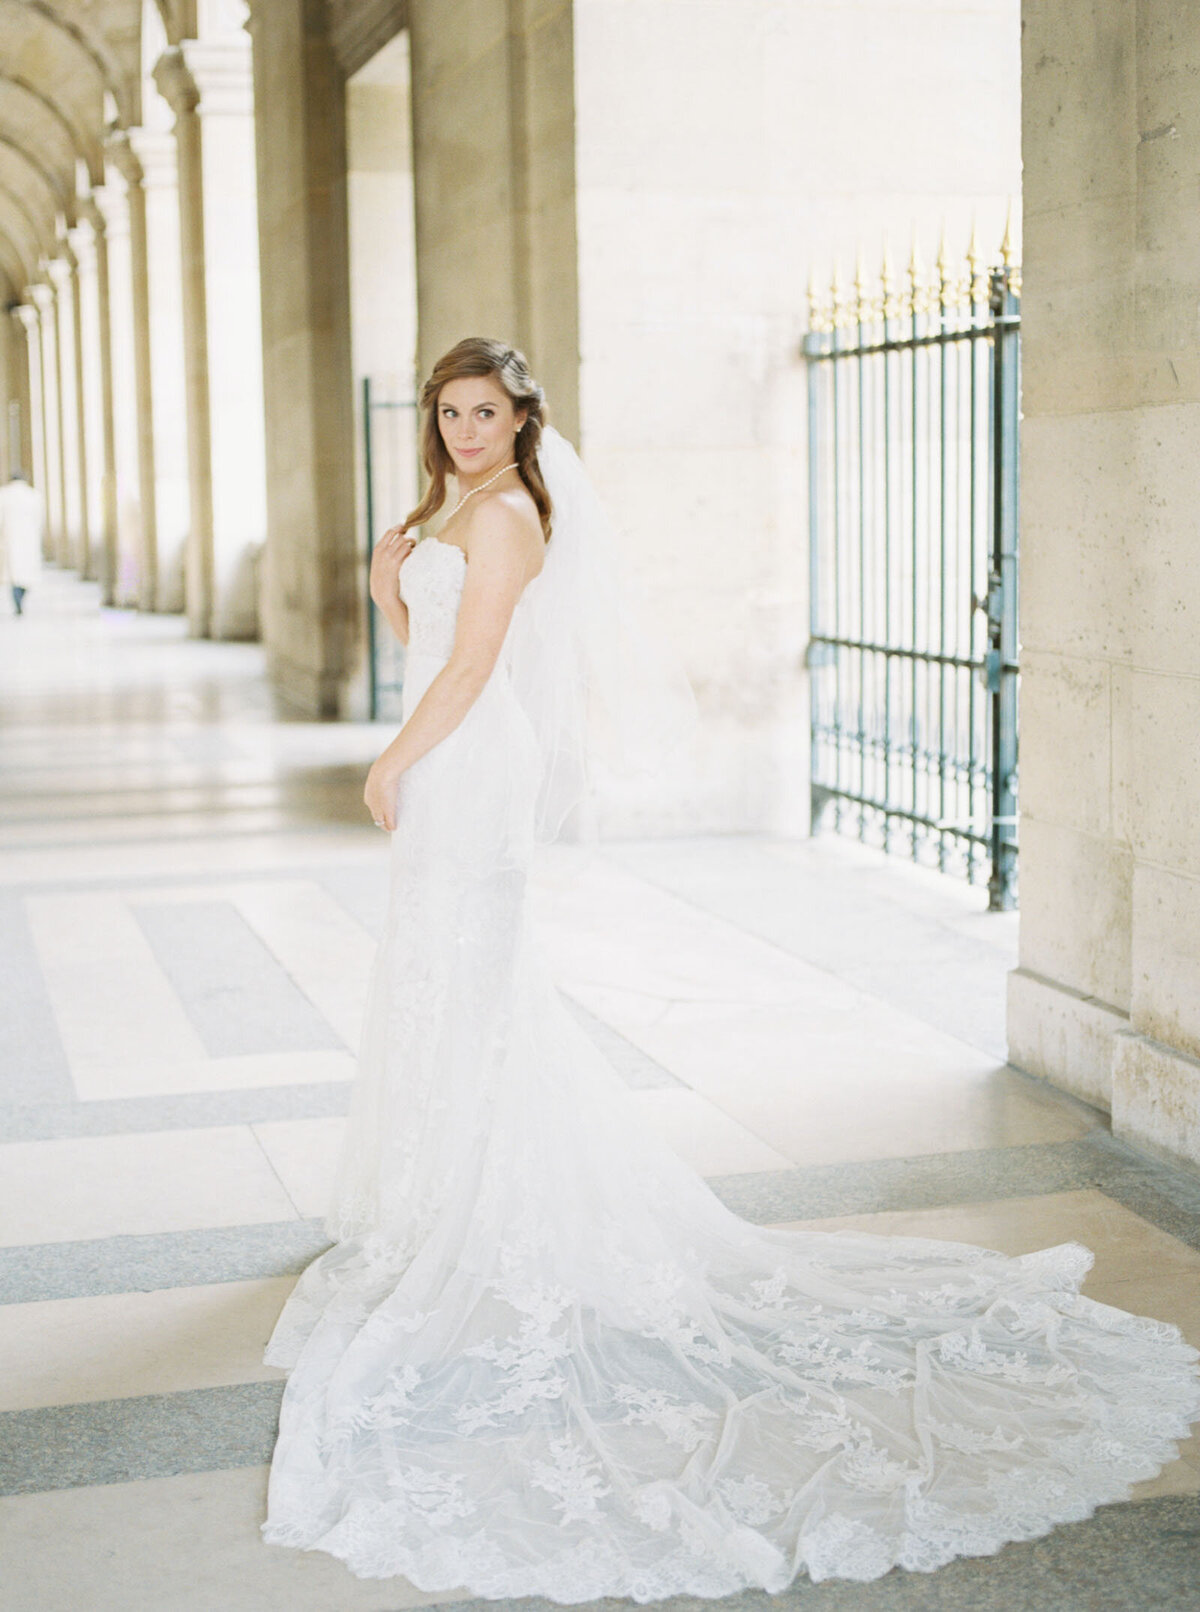 marcelaploskerphotography-paris_wedding-16